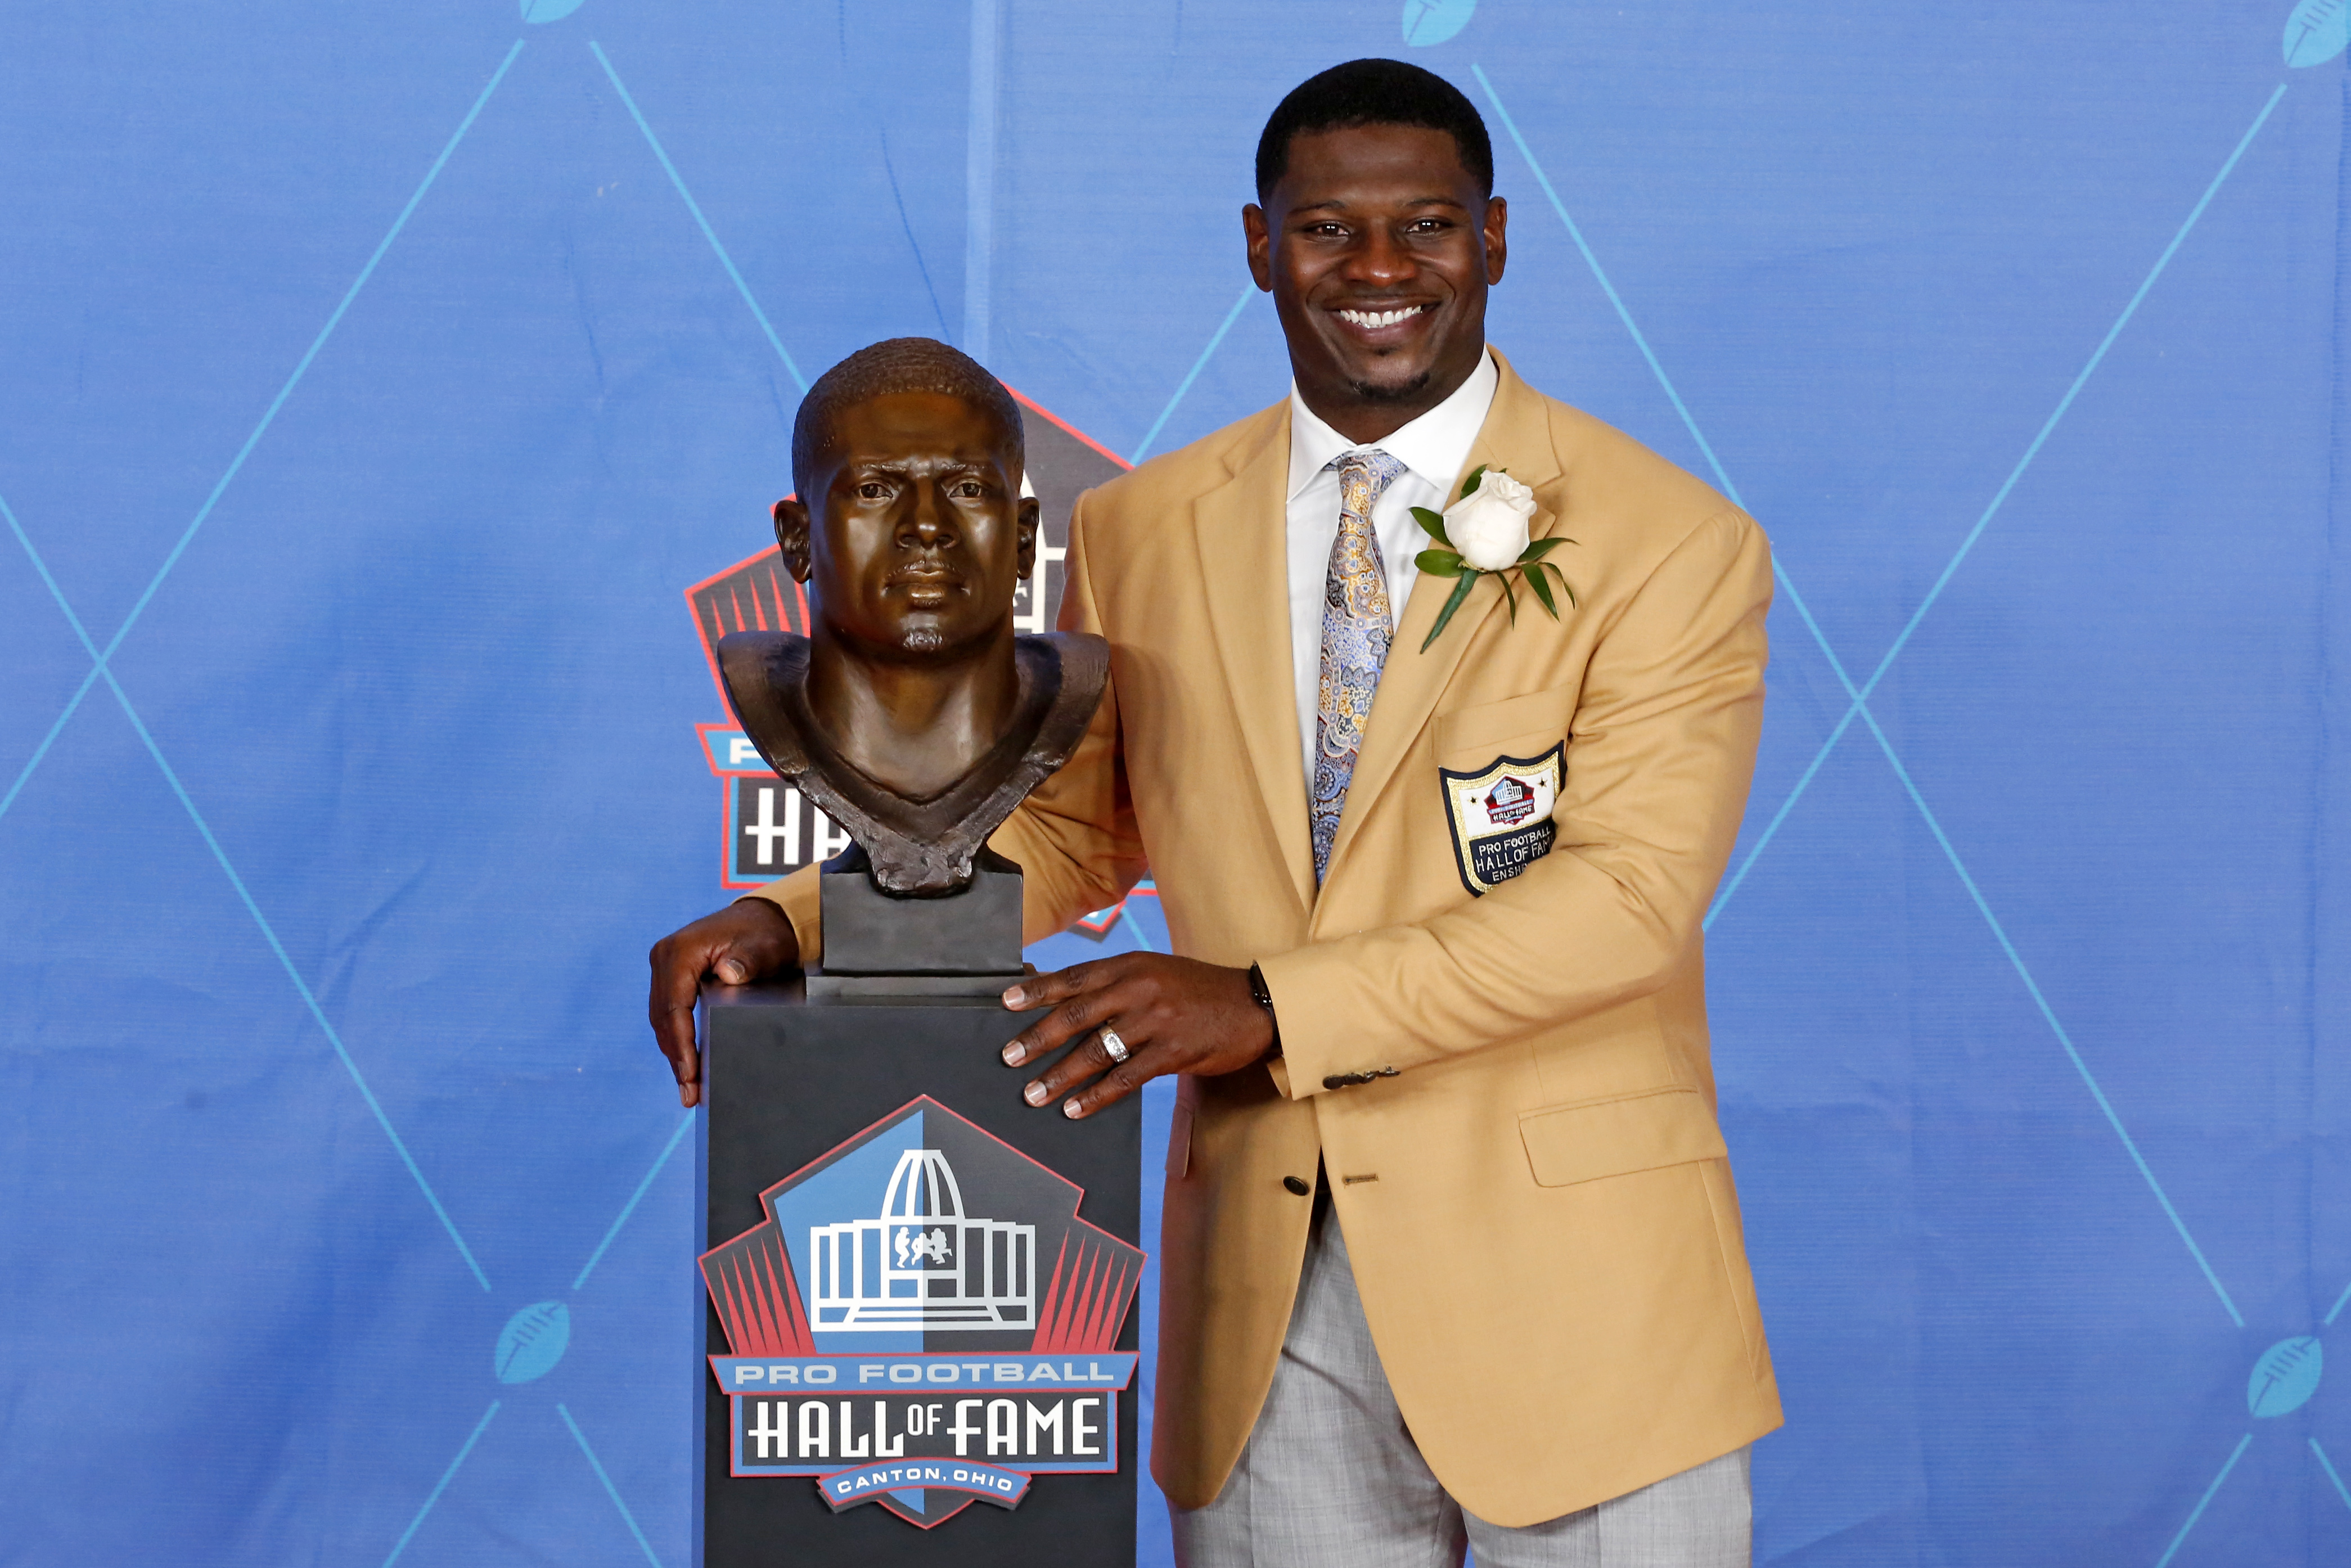 Former NFL player LaDainian Tomlinson poses with a bust of himself during an induction ceremony at the Pro Football Hall of Fame Saturday, Aug. 5, 2017, in Canton, Ohio.